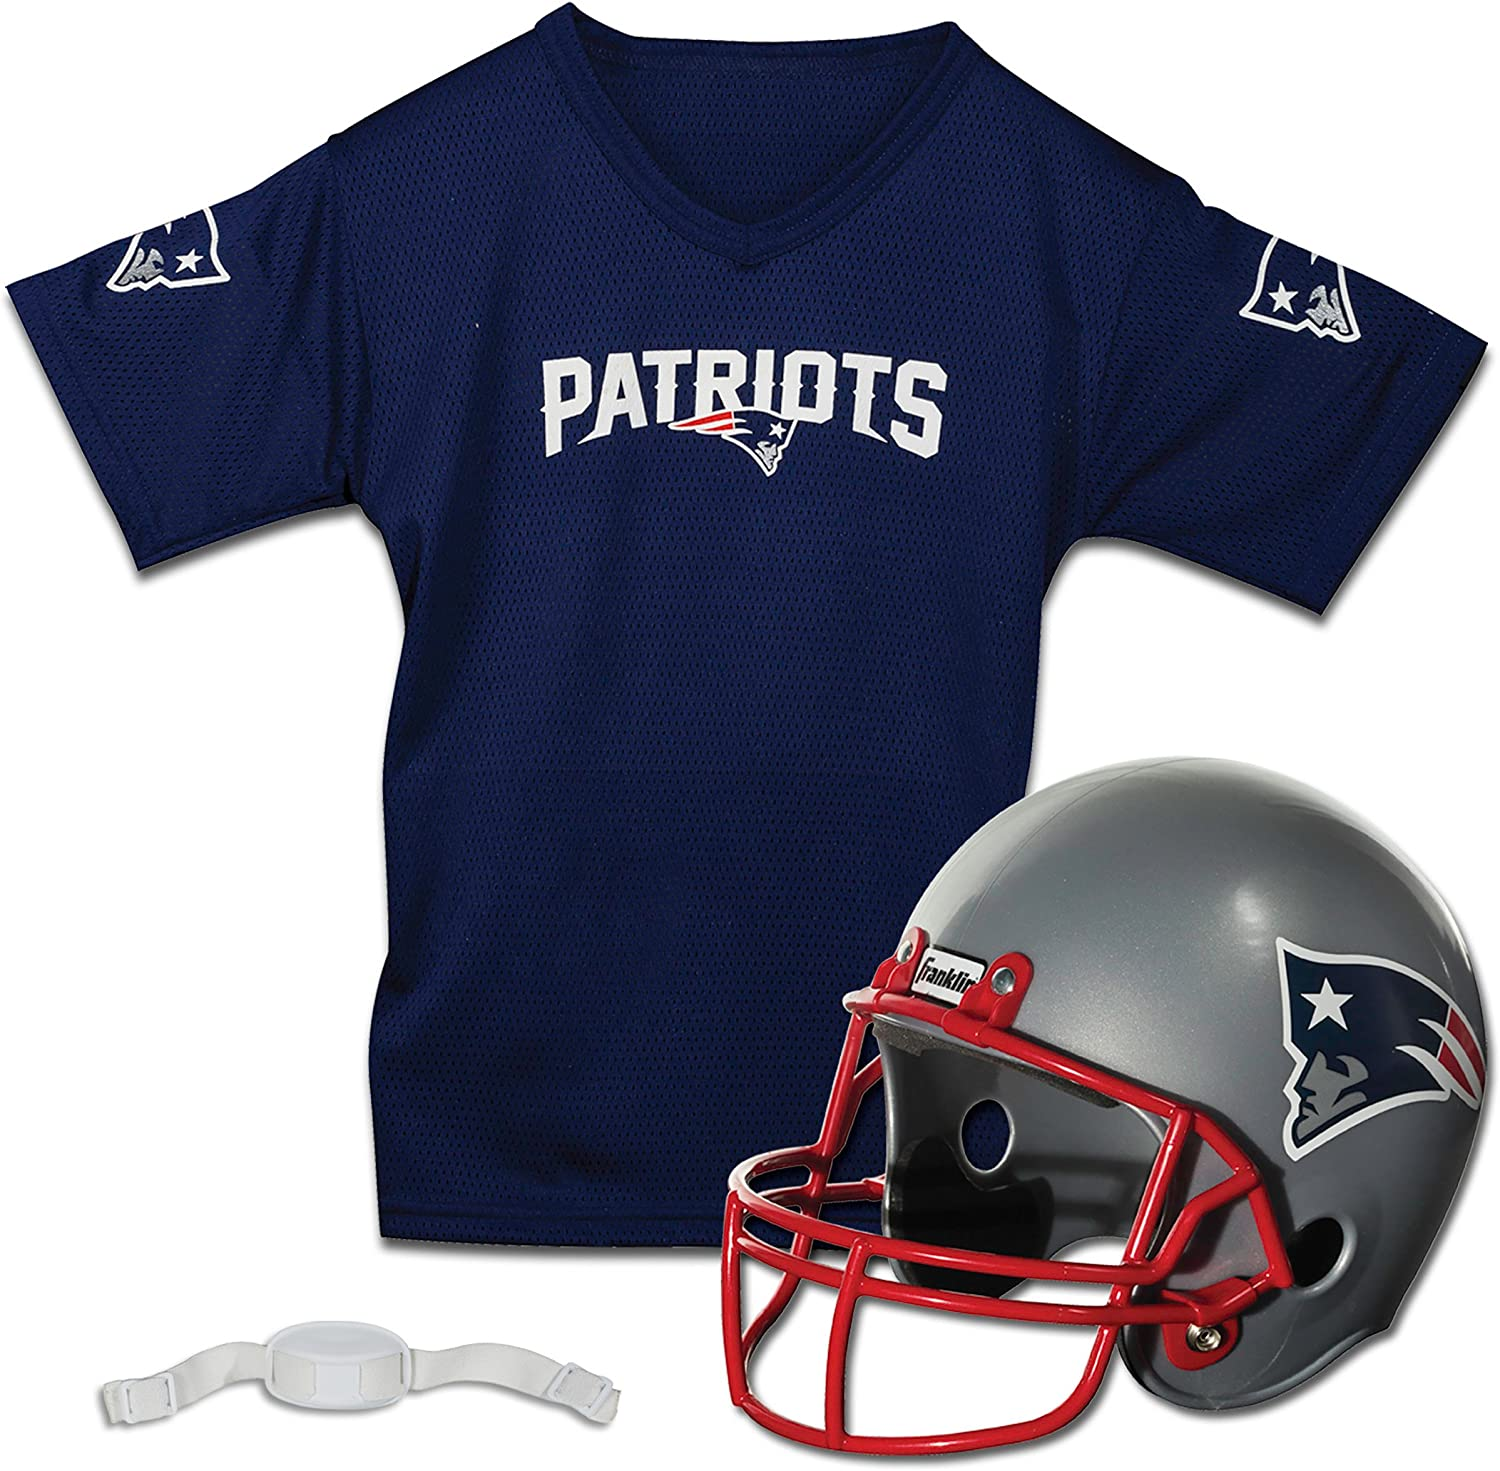 Franklin Sports NFL Kids Football Helmet and Jersey Set - NFL Youth Football Uniform Costume - Helmet, Jersey, Chinstrap - Youth M